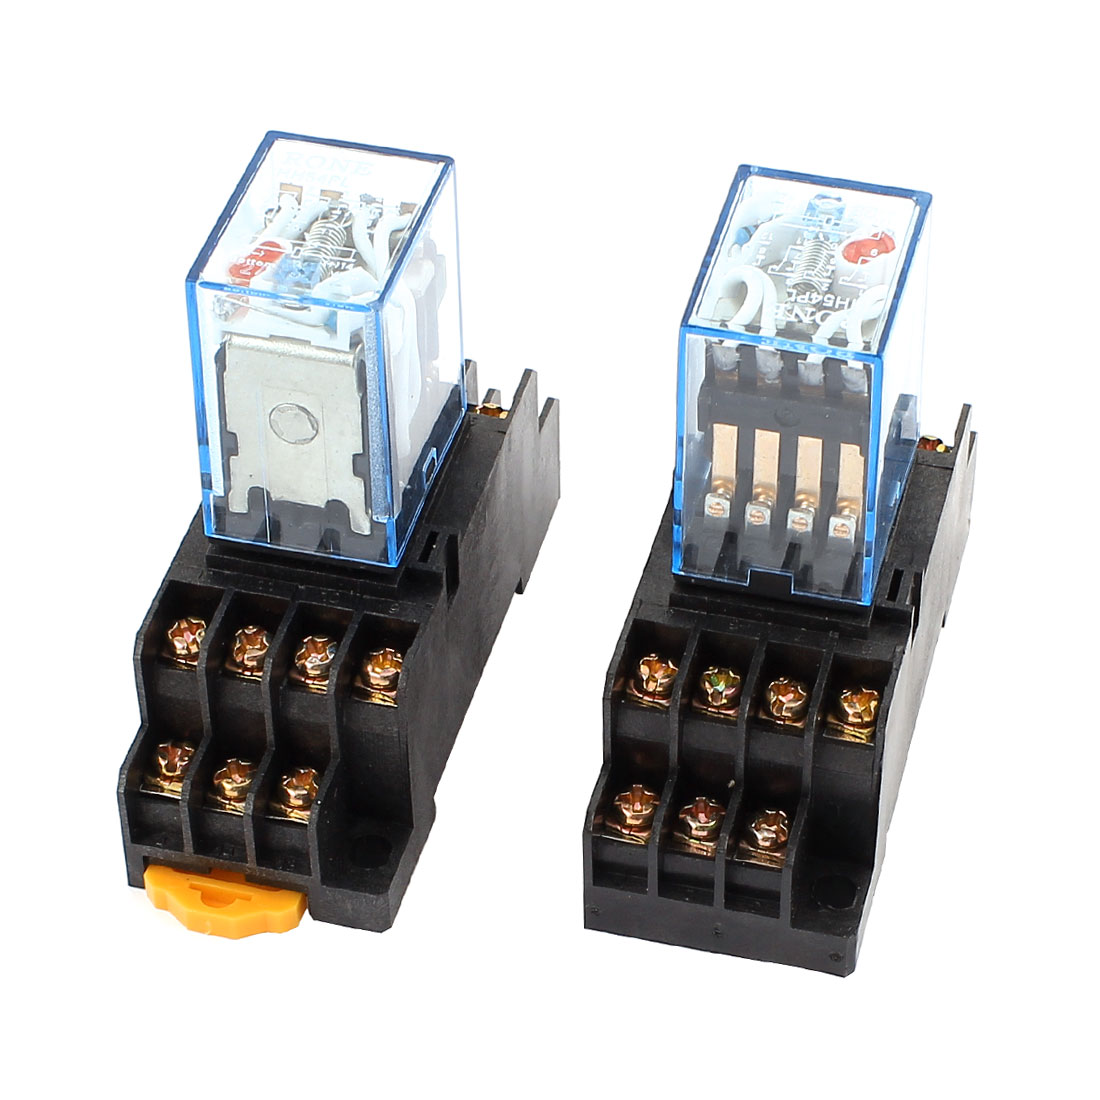 2 Pcs AC 110/120V 5A Coil Red Indicator Light 35mm DIN Rail 4PDT 14Pins Electromagnetic General Purpose Power Relay + Socket Base